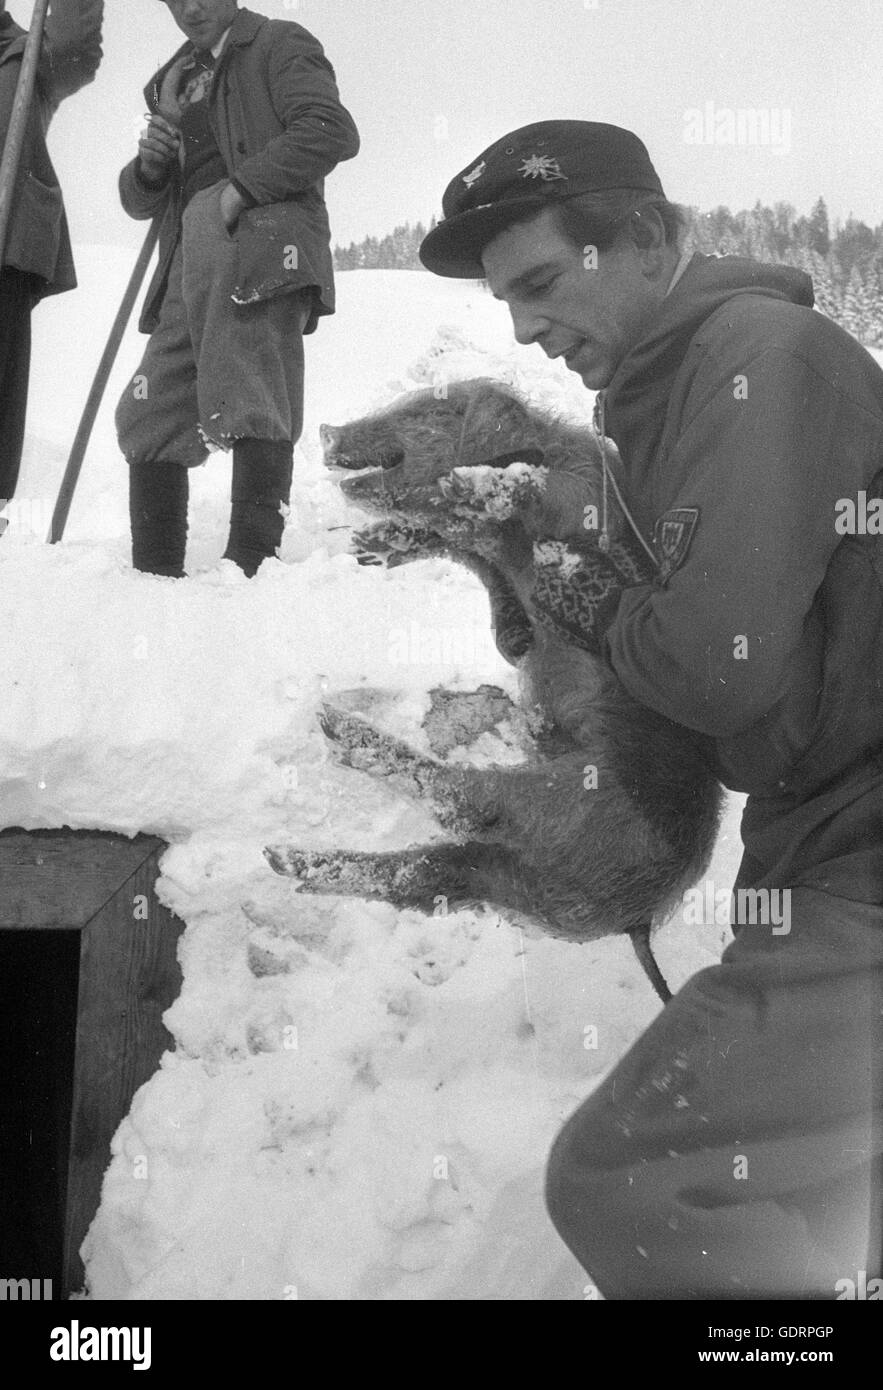 After an avalanche rescuers dig their way through the snow to a building, 1955 - Stock Image